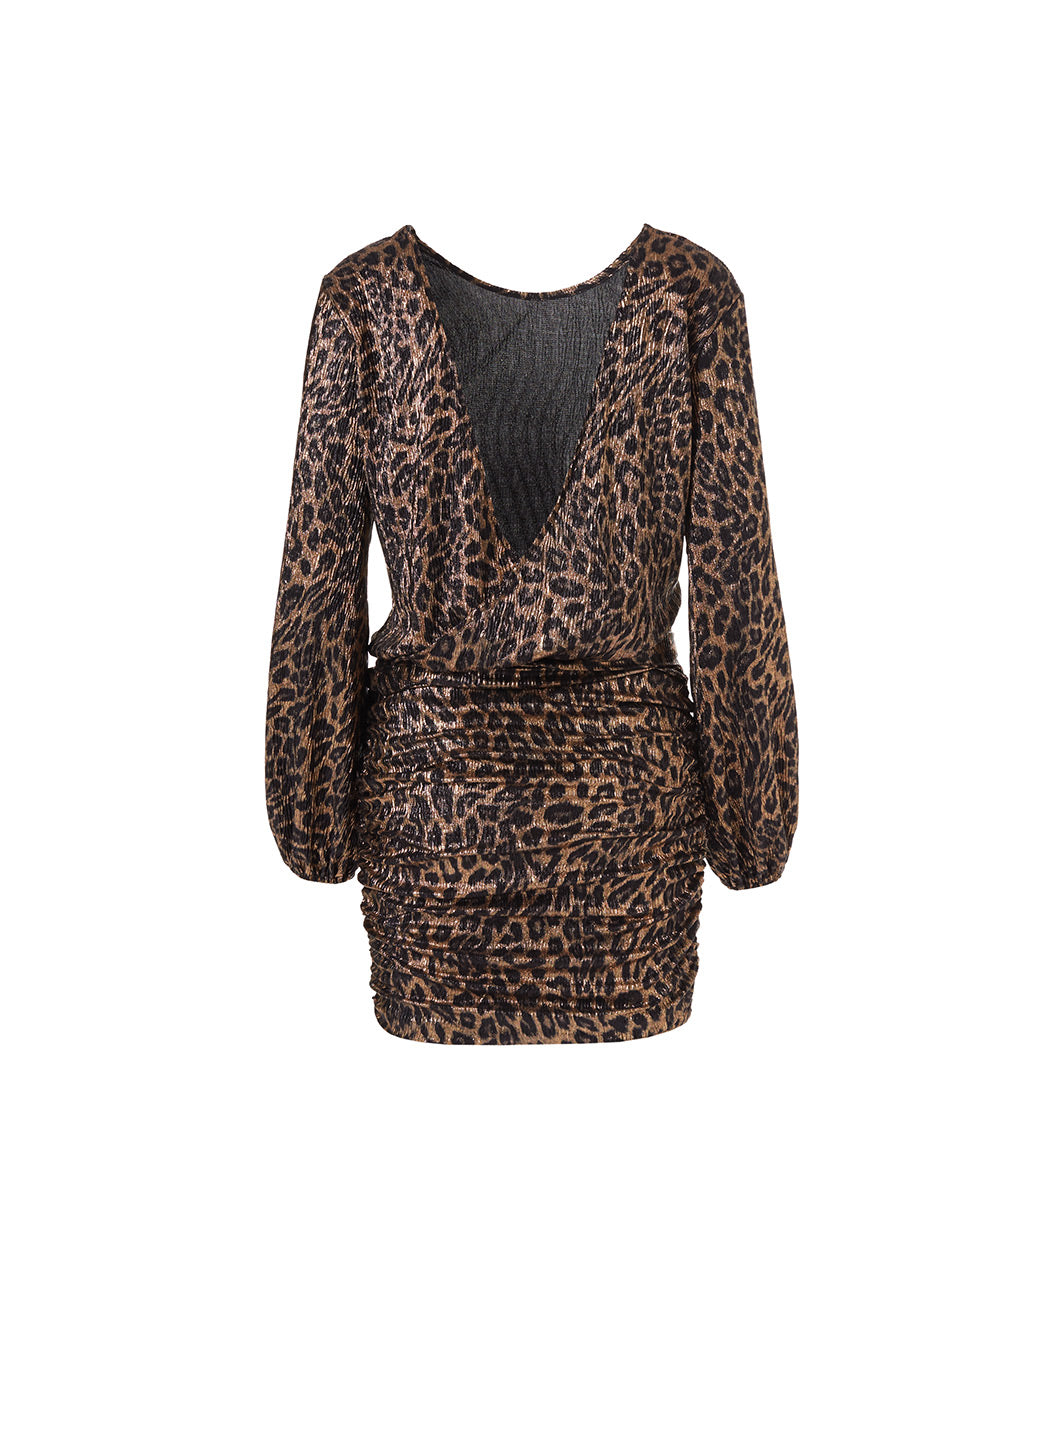 Look 20 Open Back Mini Dress Leopard